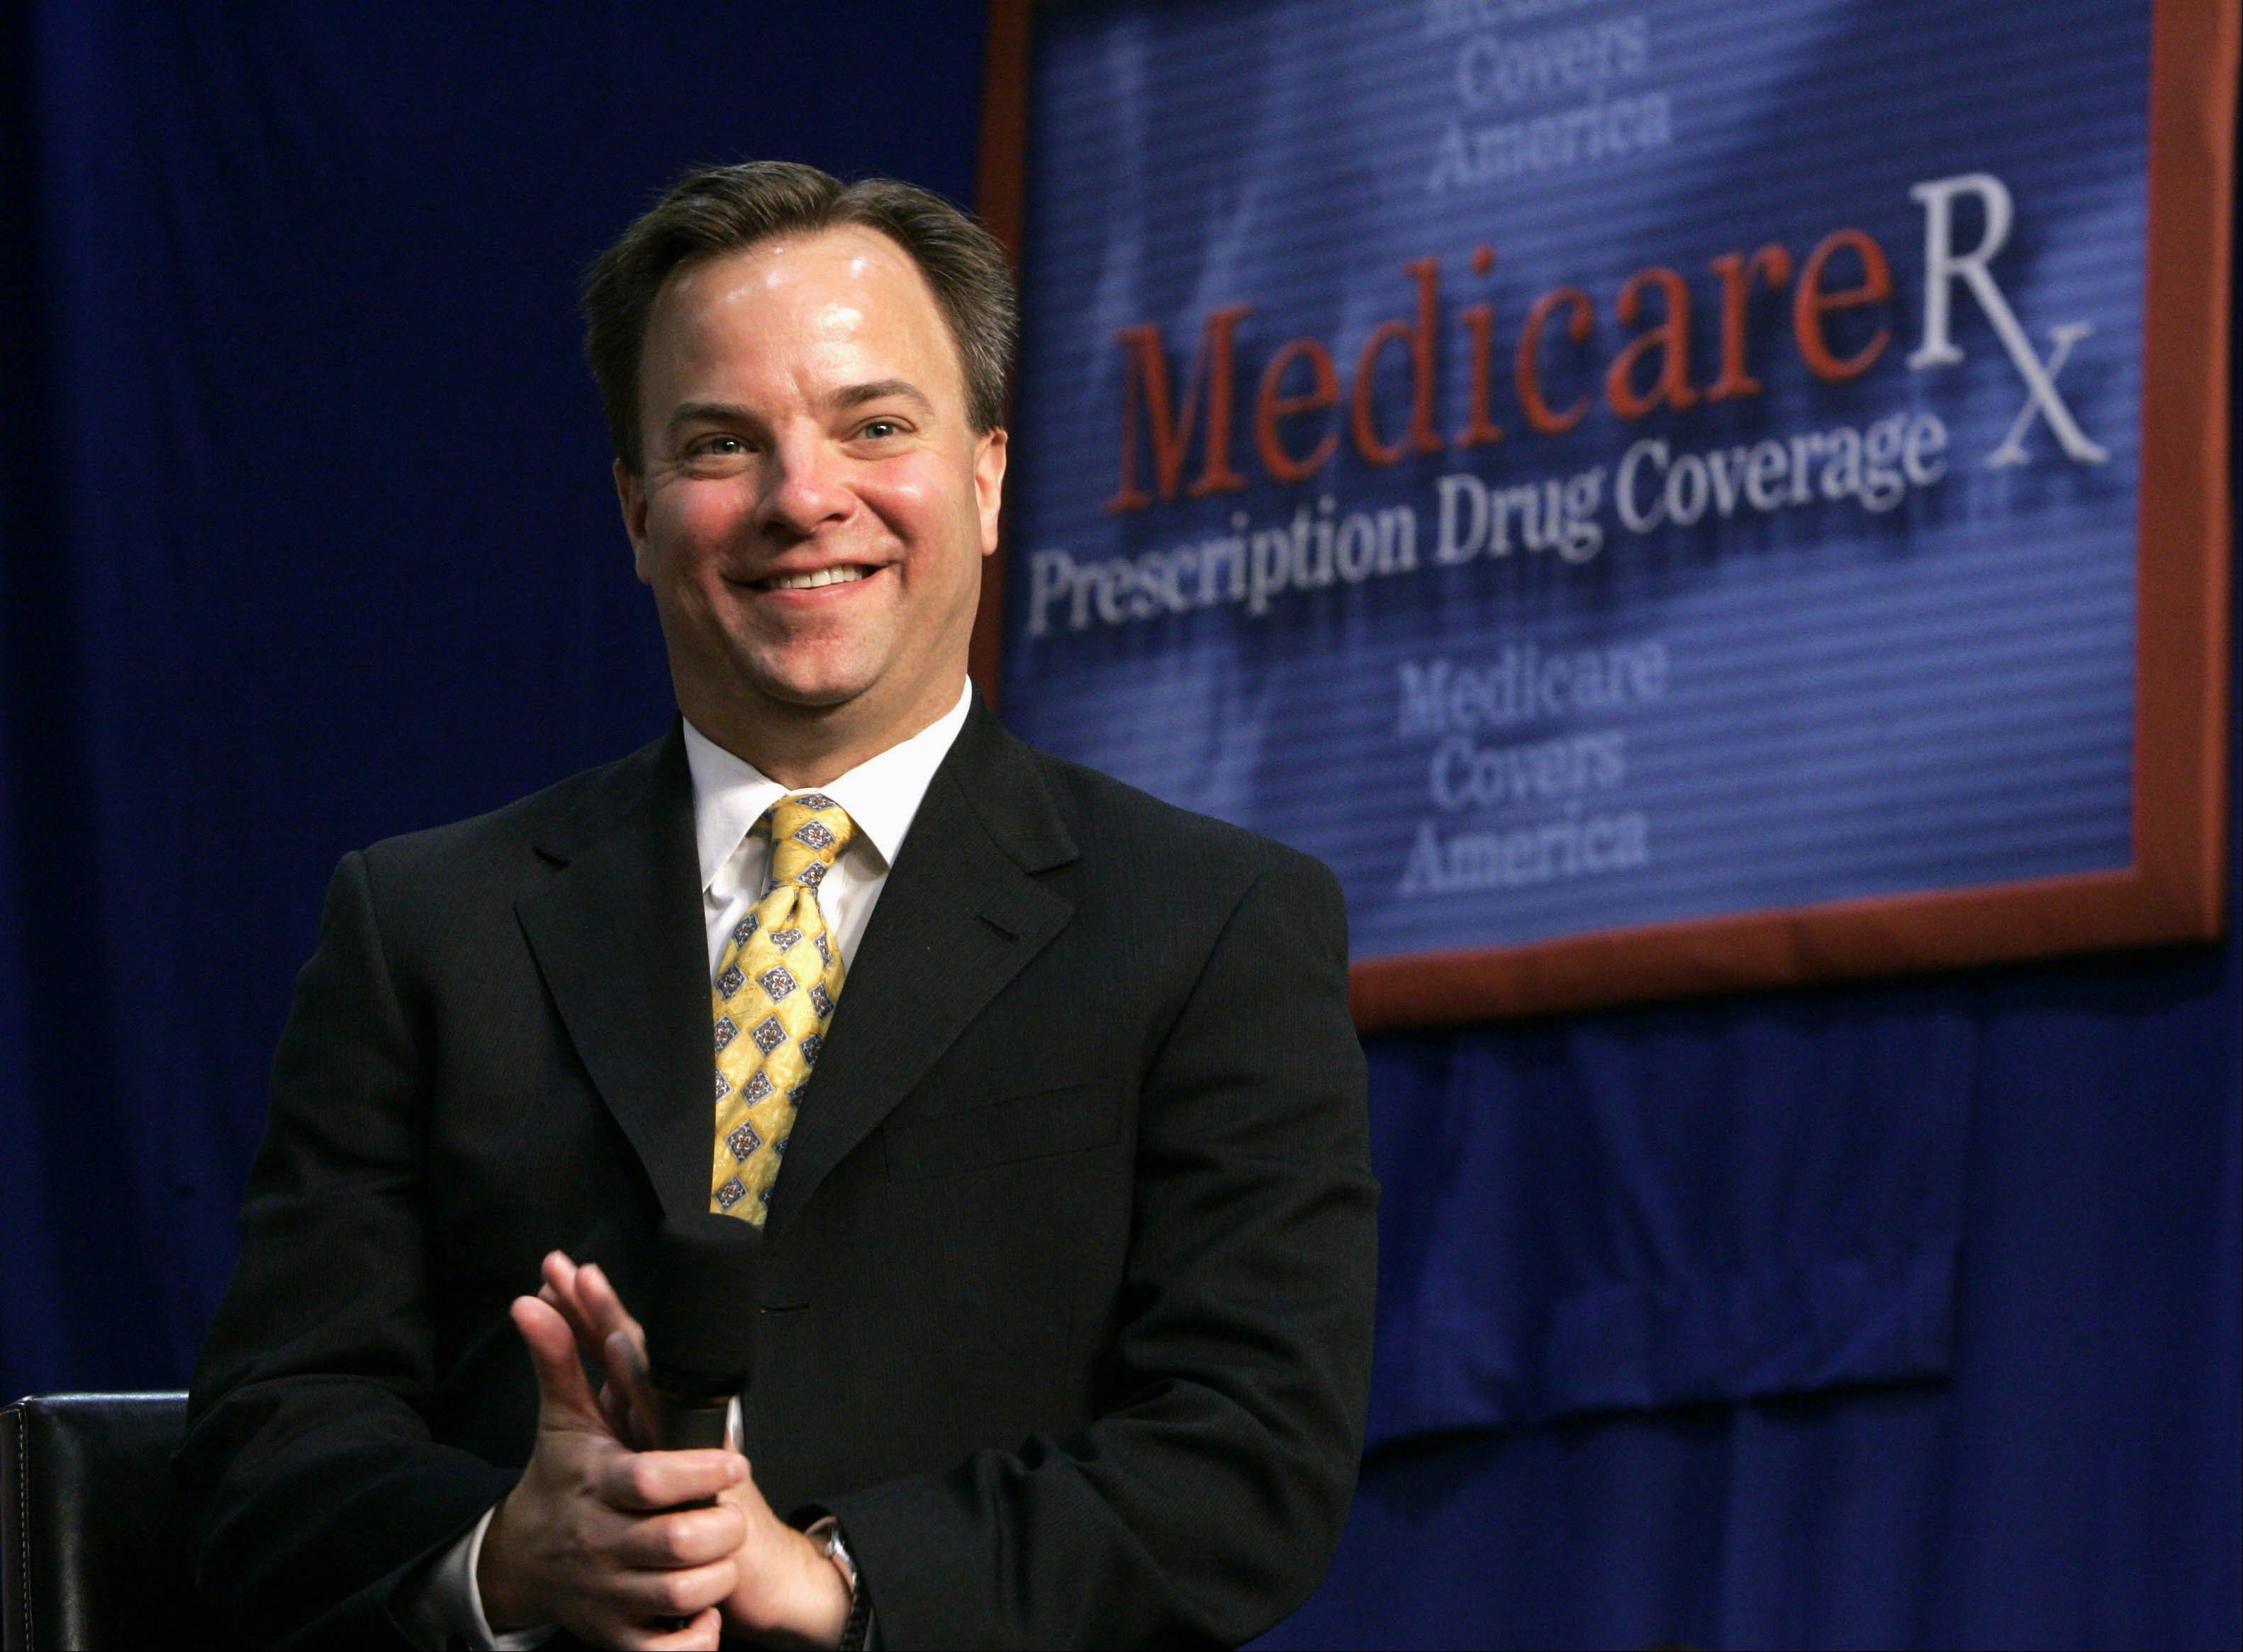 Mark McClellan, who ran Medicare during the prescription program rollout in 2006, said that during that time he had detailed daily tracking stats, and he's sure the Obama administration must have at least the same level of information.